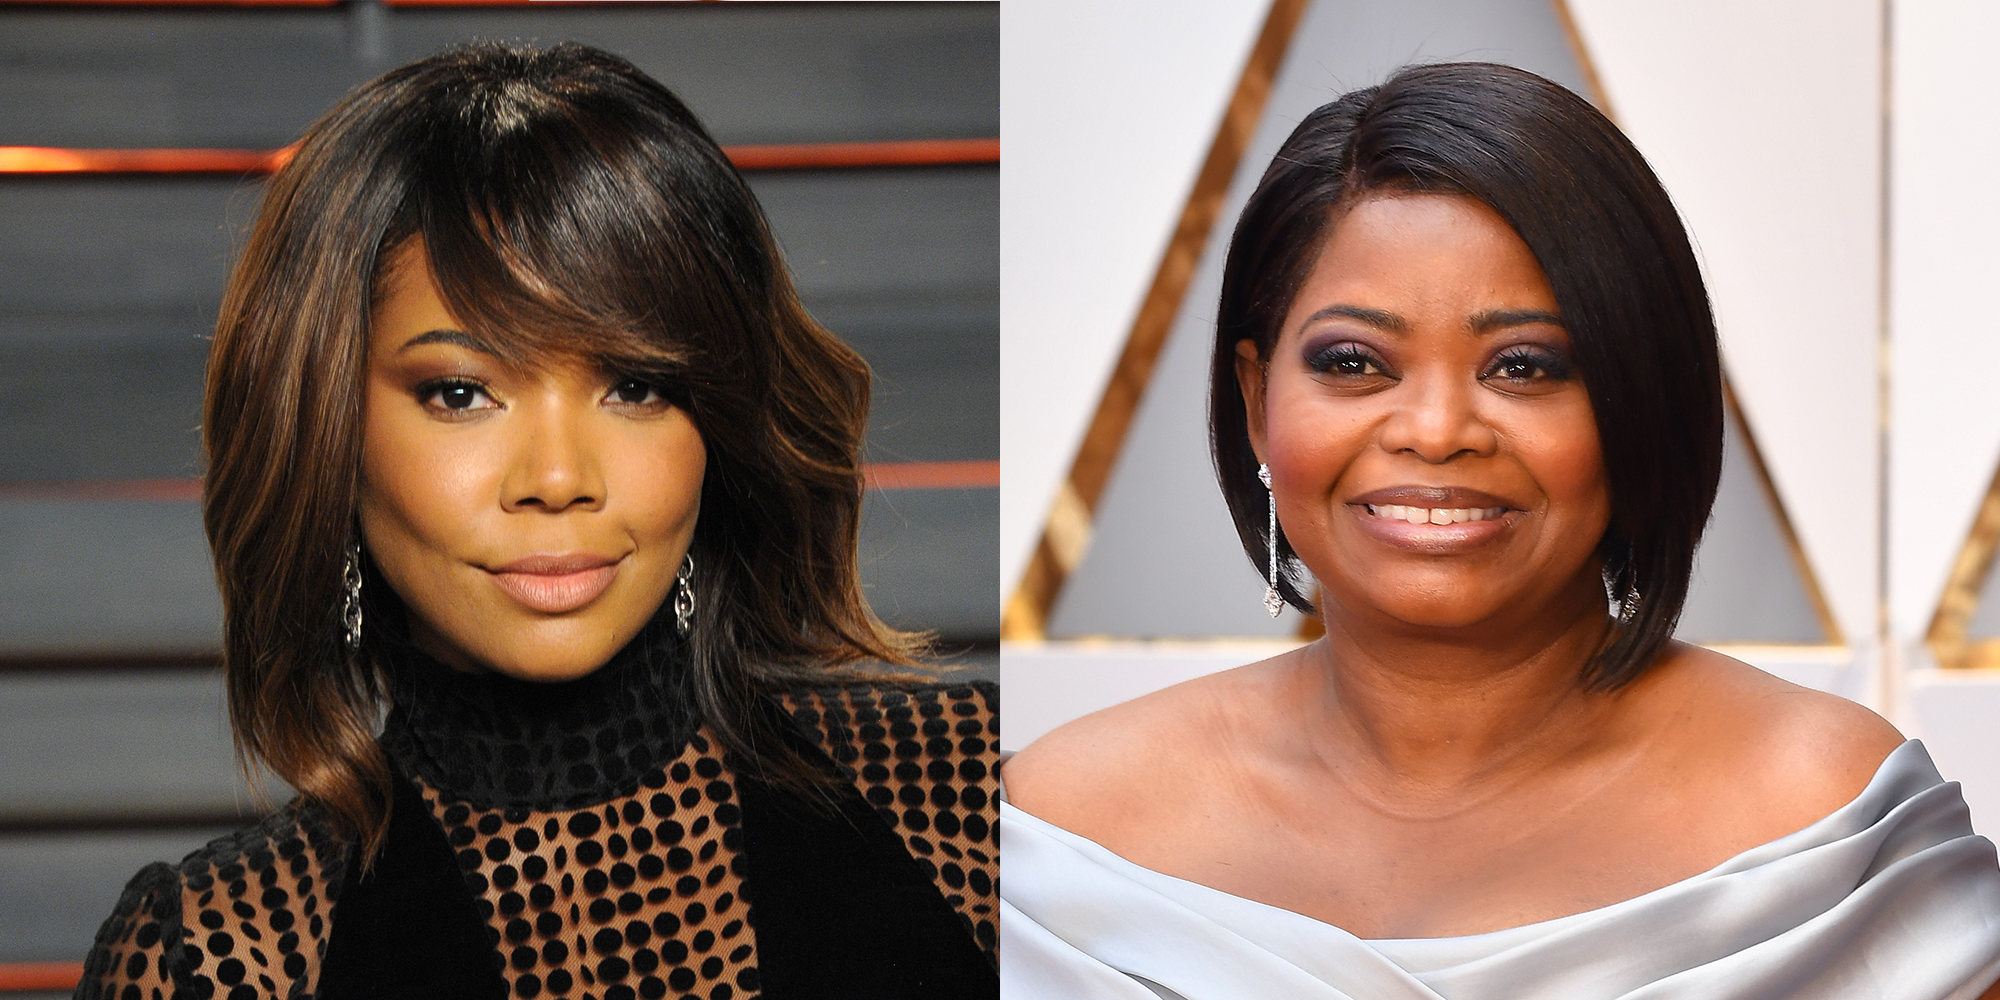 Gabrielle Union and Octavia Spencer Just Announced They're Starring in This Buzzy Book Adaptation